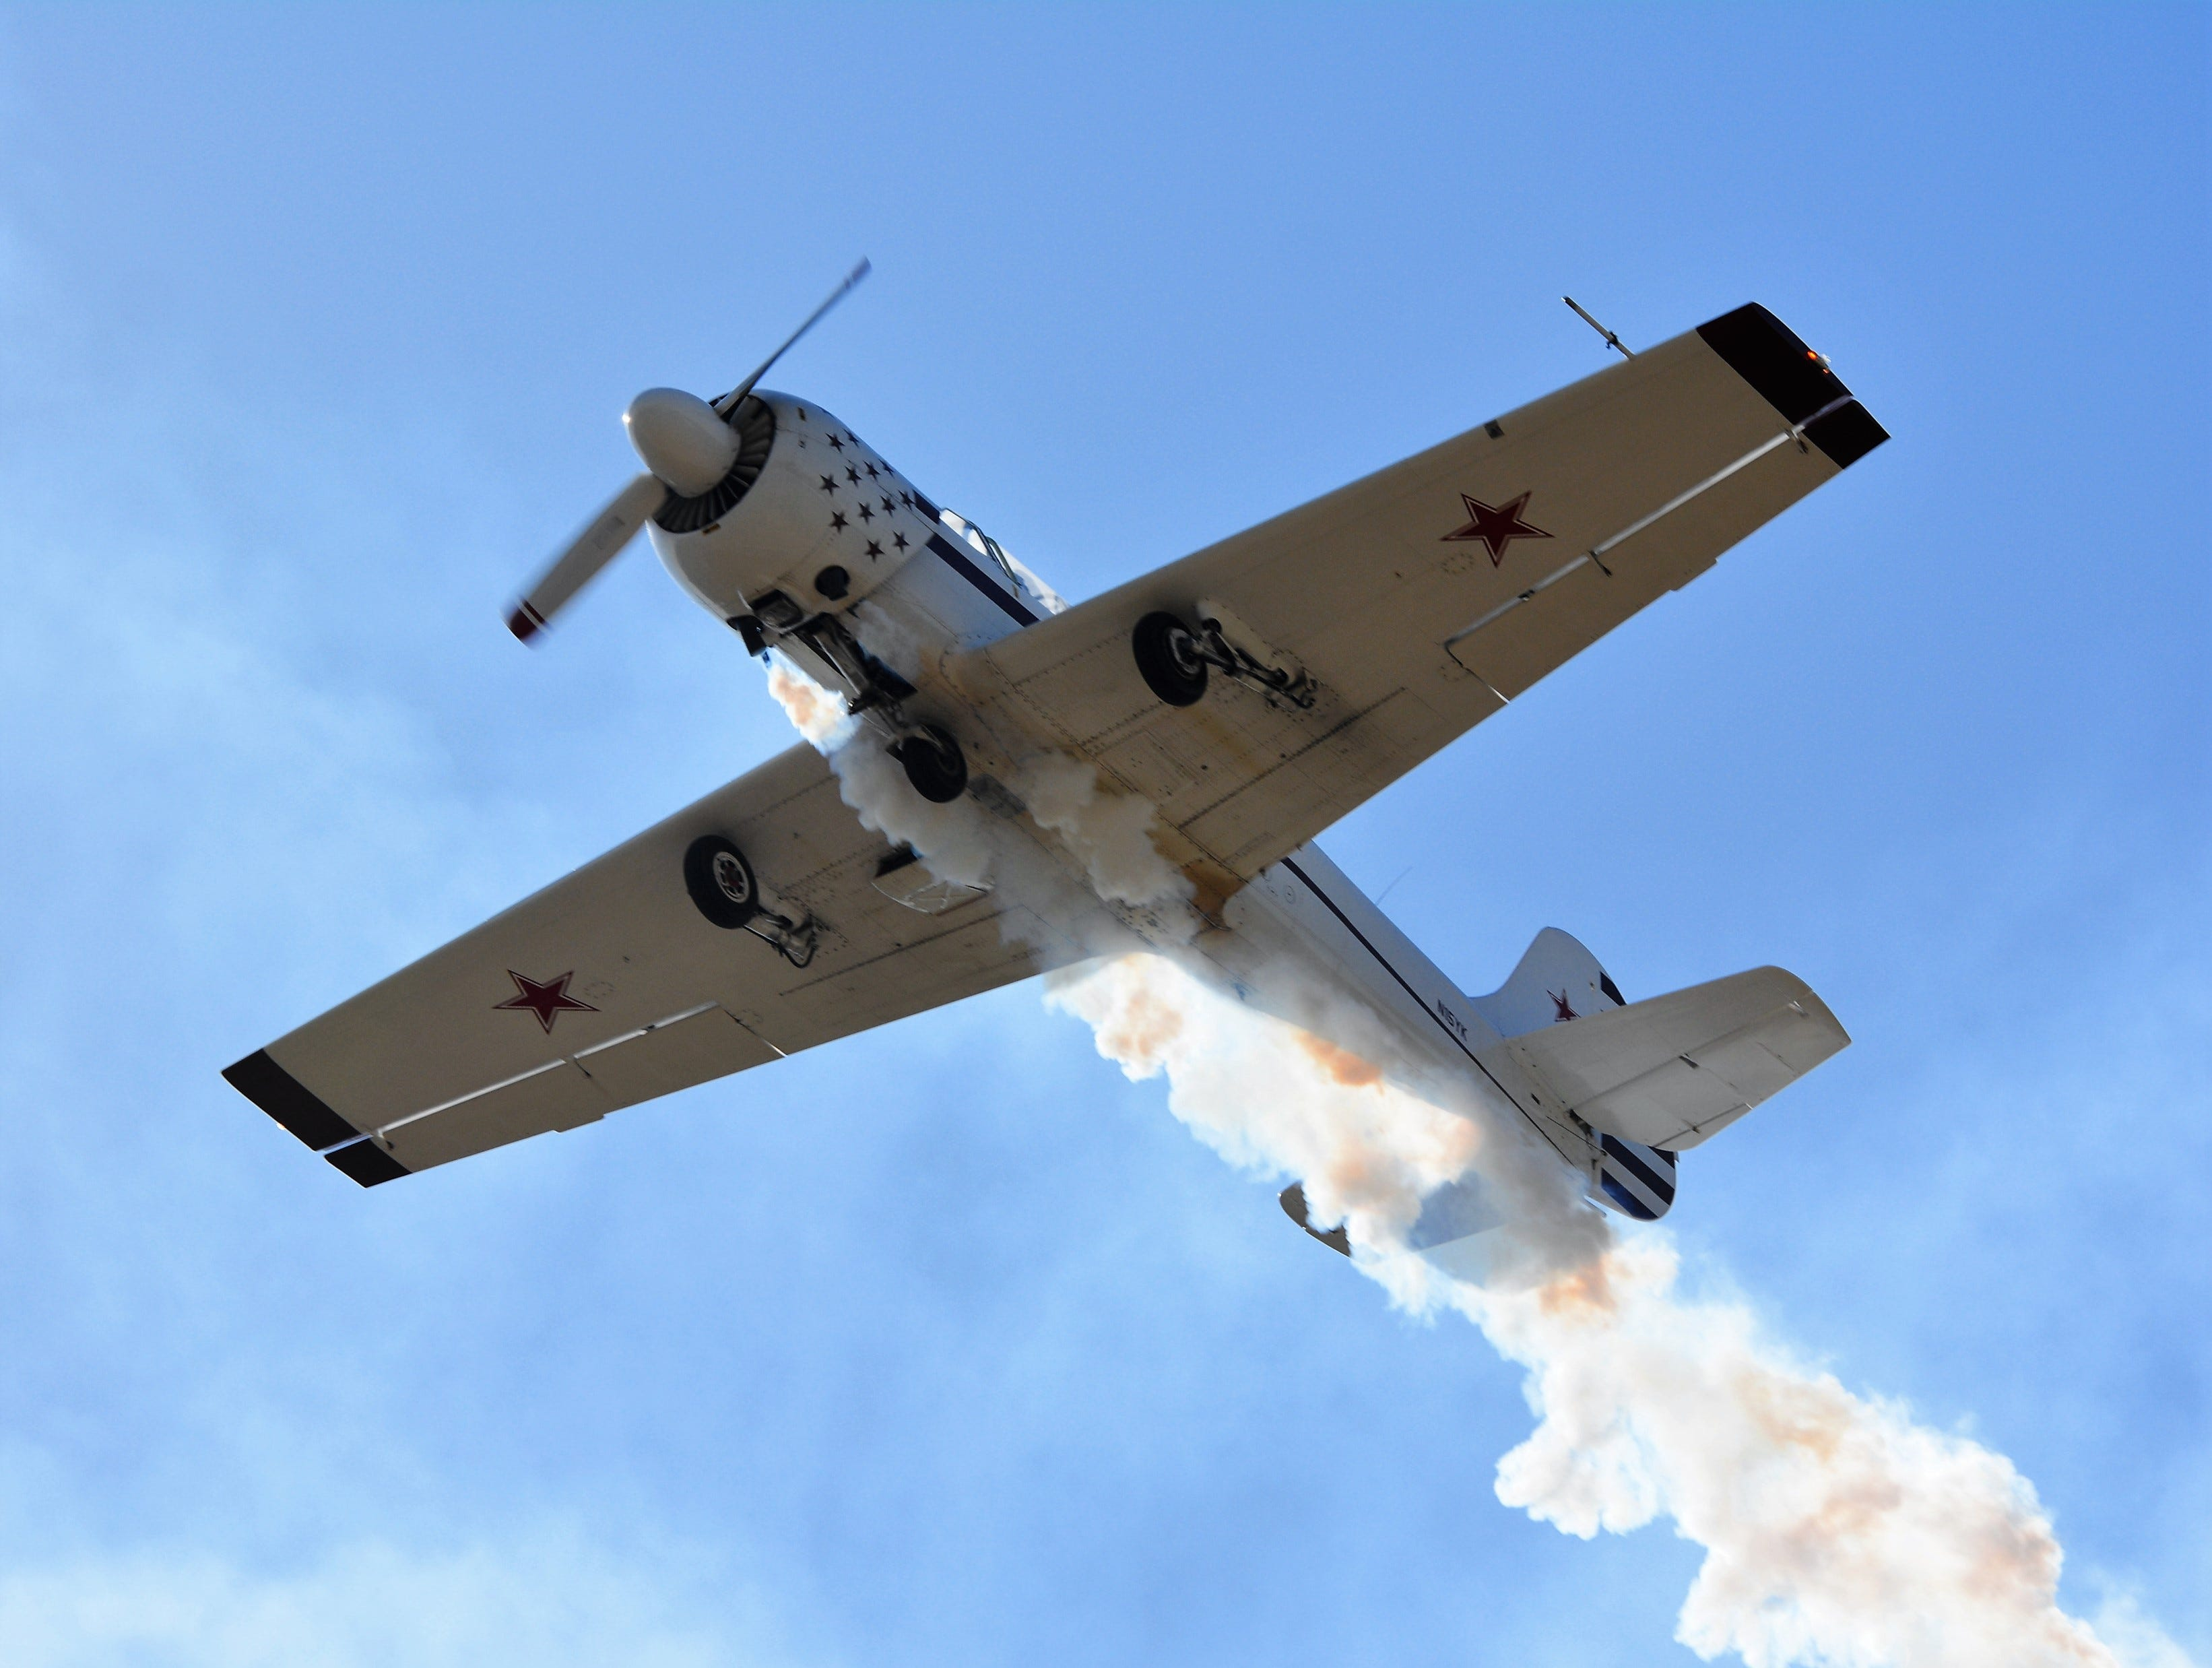 A plane is seen close up during a re-enactment presented during the Oconto Fly-in, Car & Tractor Show on Sept. 15 at the Oconto-J. Douglas Bake Municipal Airport.